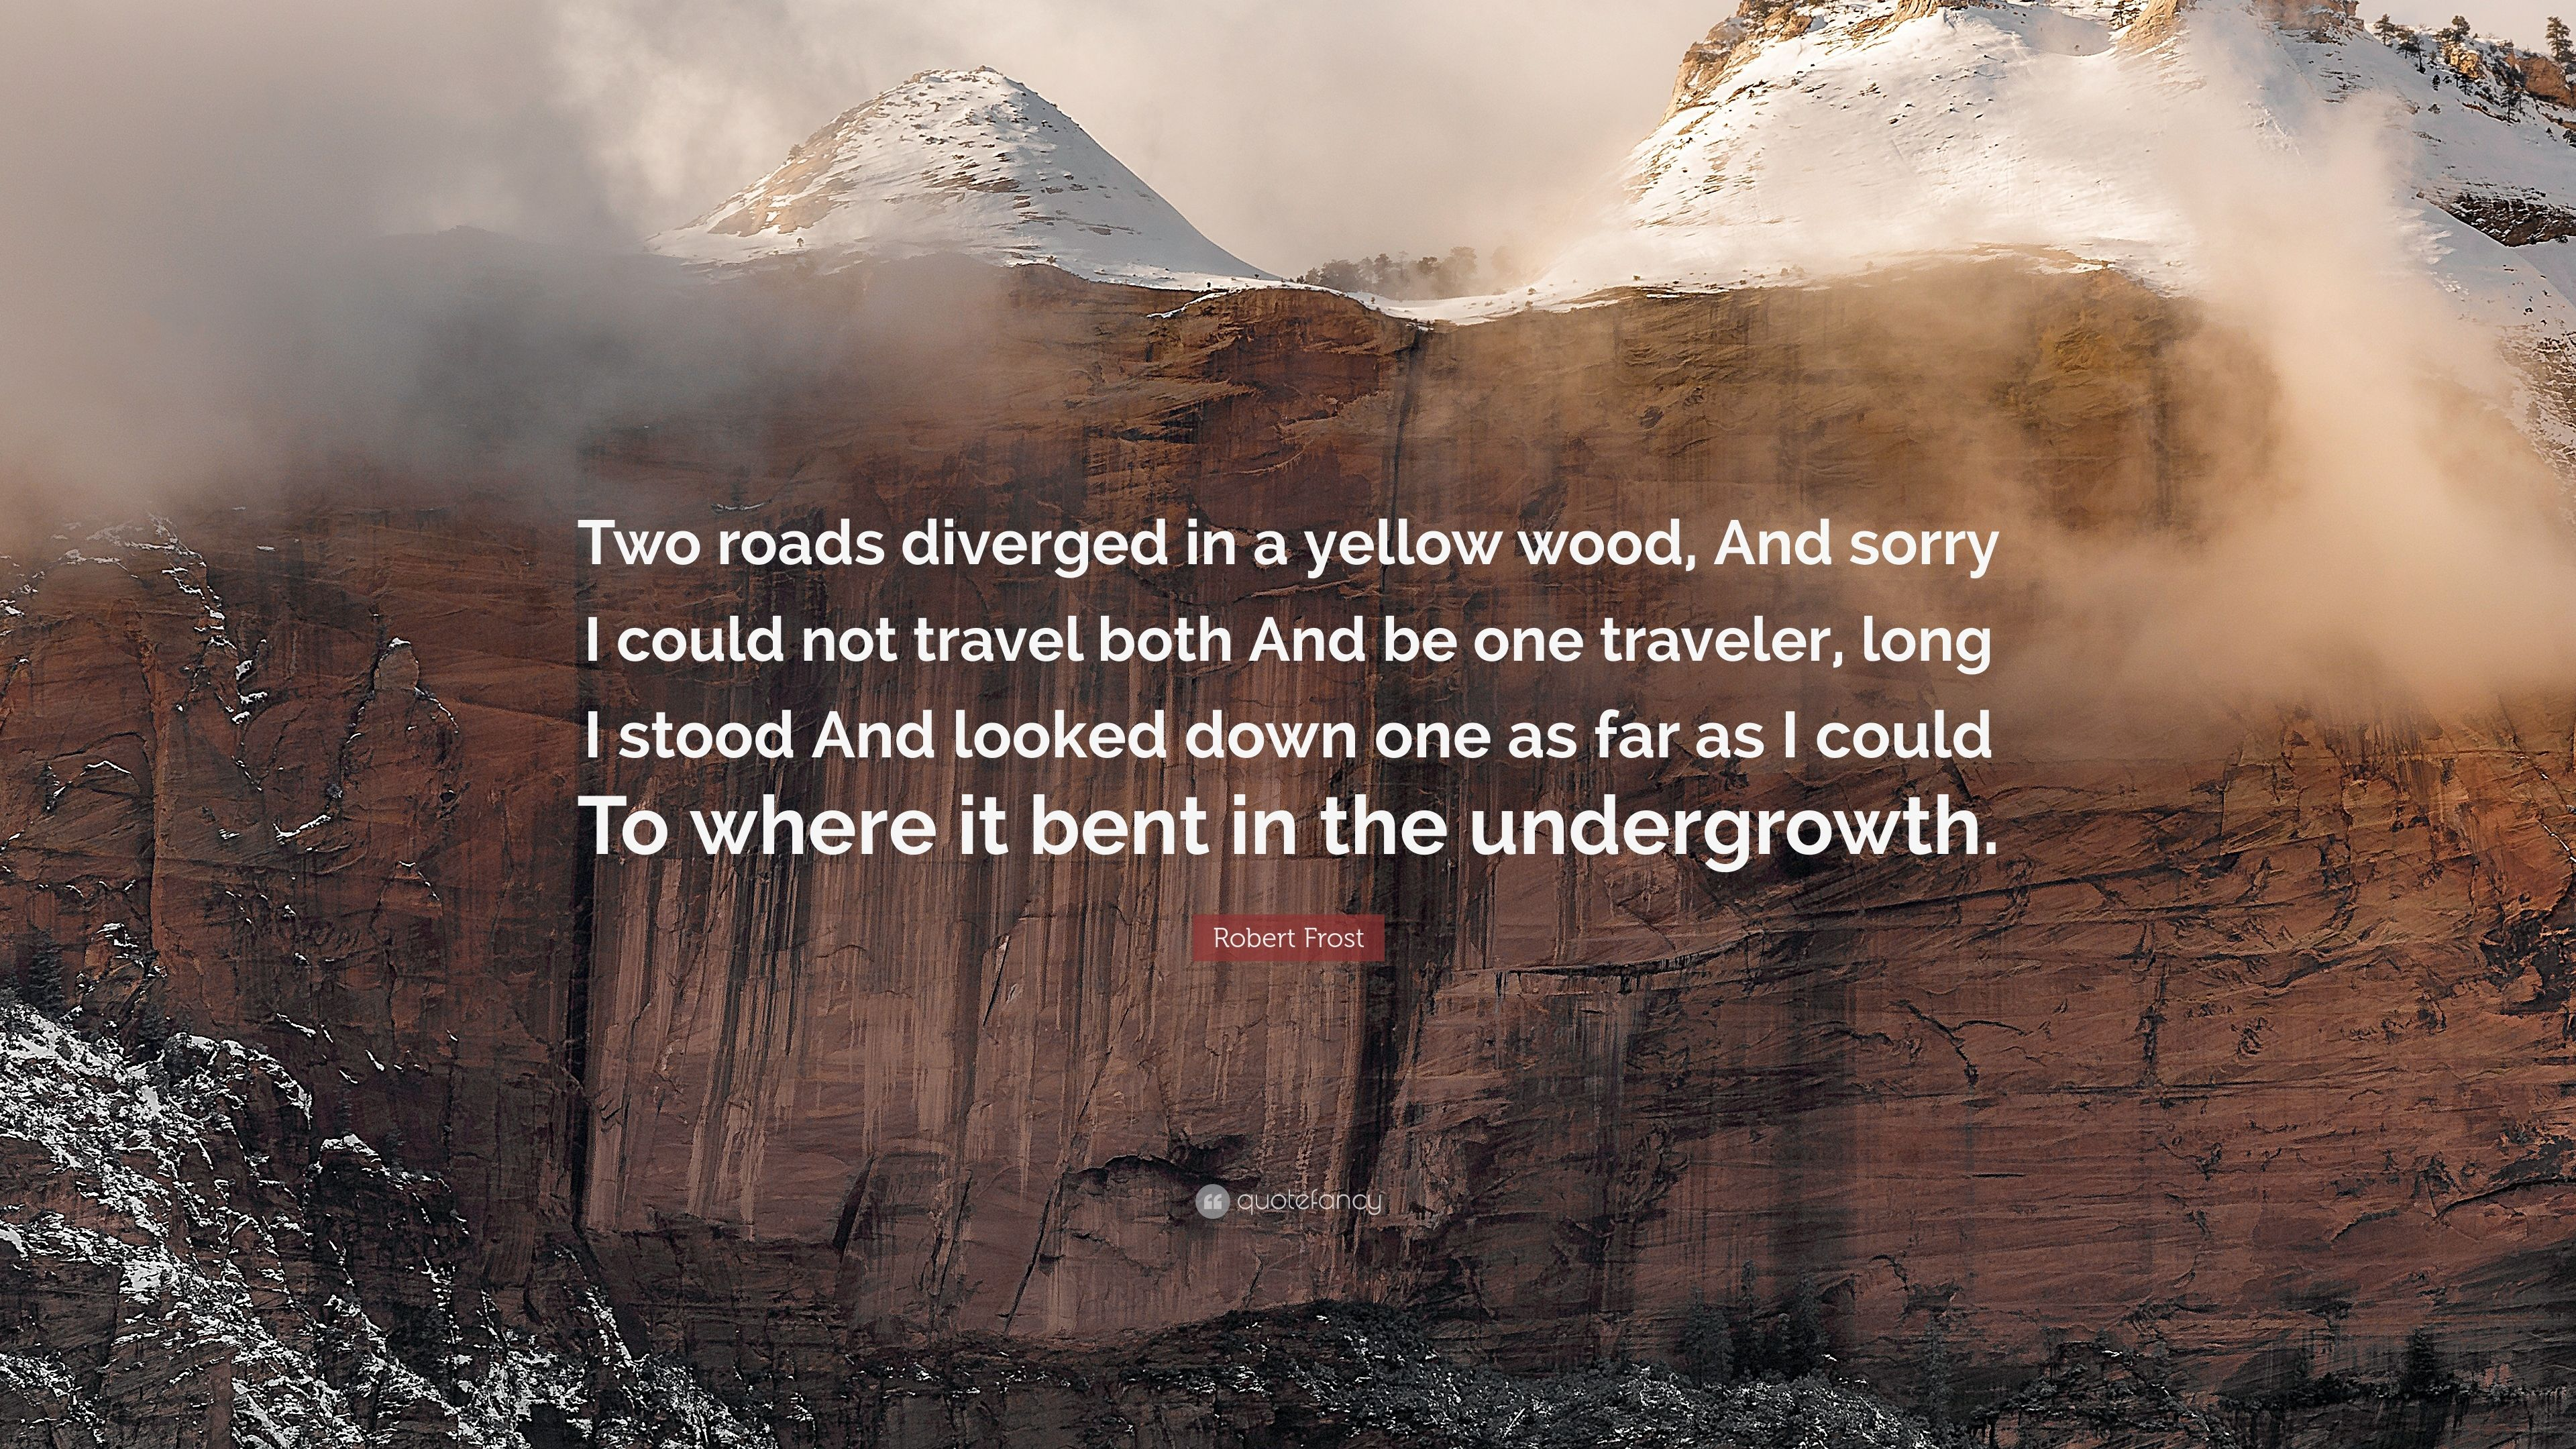 two roads diverged poem